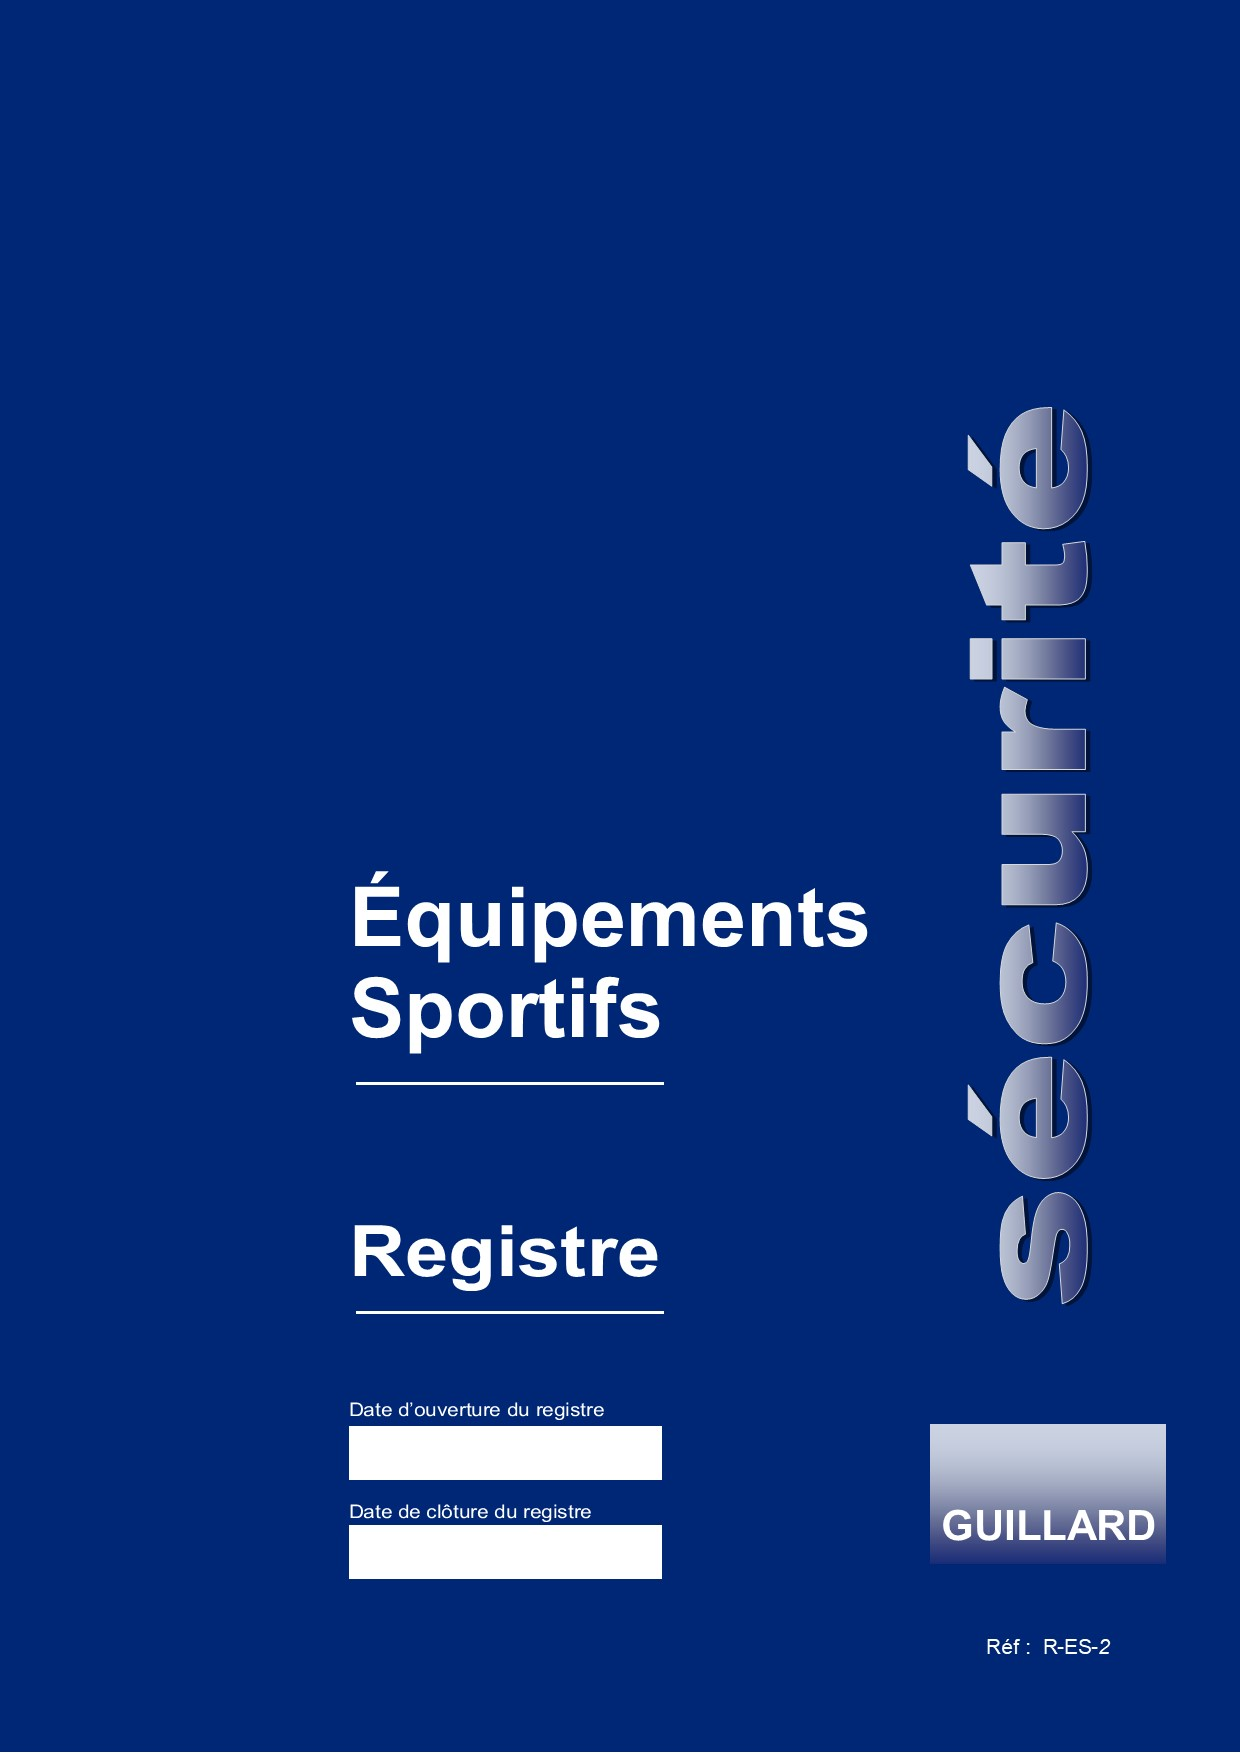 Registre de sécurité pour équipements sportifs : buts de foot-ball, basket-ball, hand-ball, hockey, rugby, volley-ball - R.ES- Edition GUILLARD